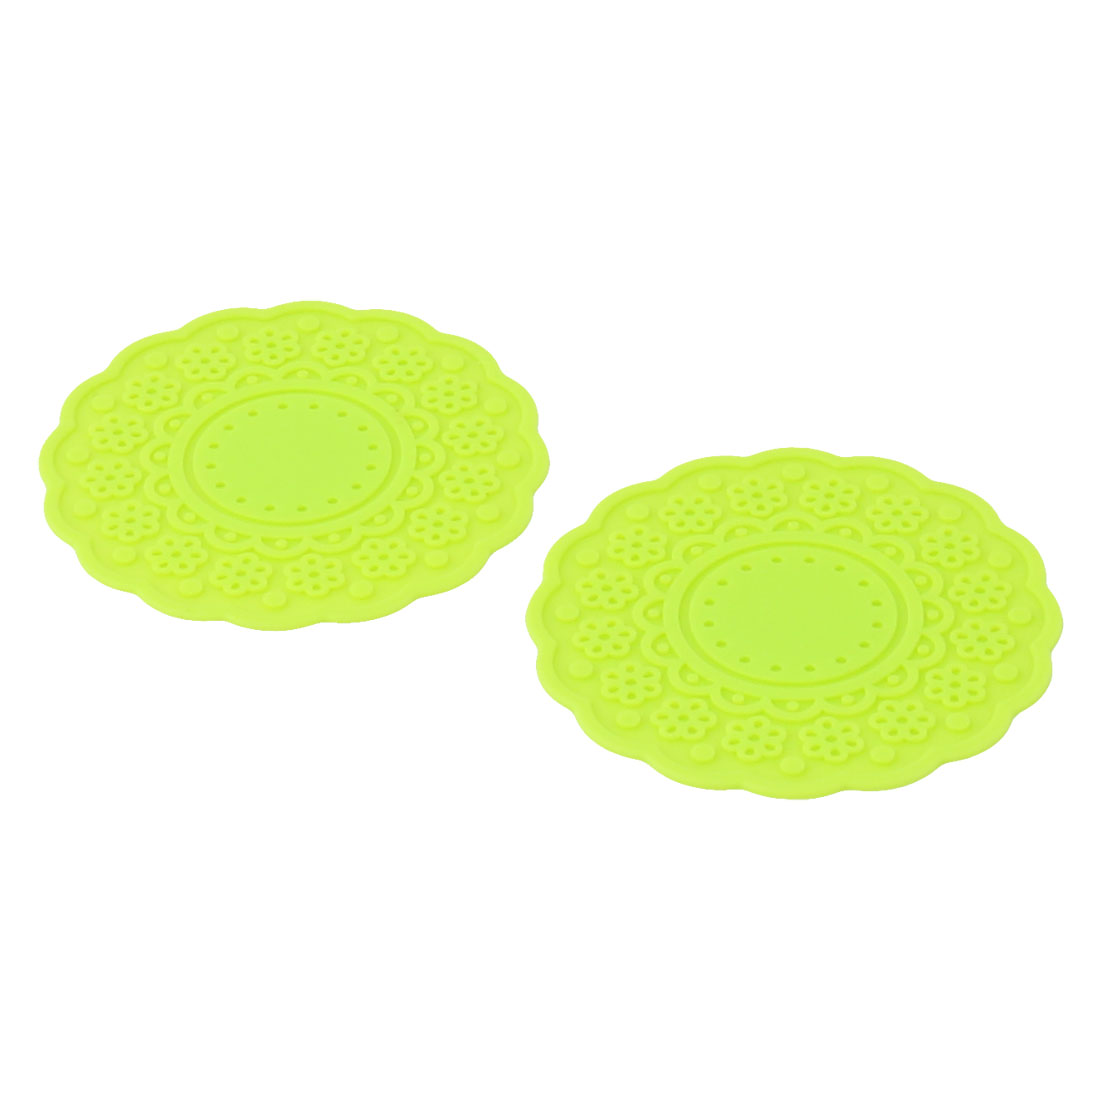 Houseware Flower Design Rubber Drinking Heat Glass Cup Coaster Mats Pad Yellow Green 2 PCS